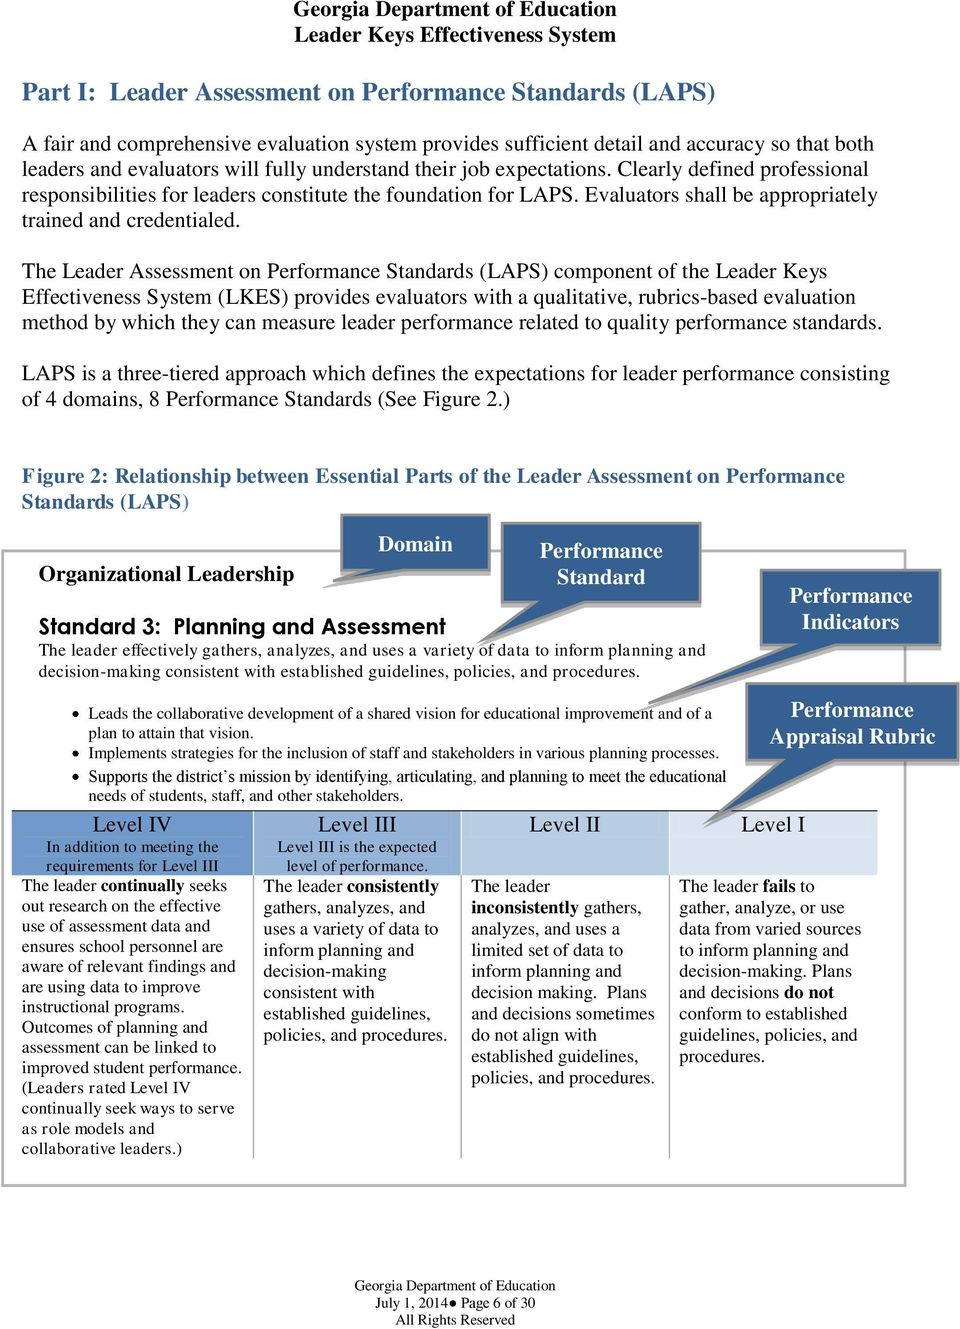 The Leader Assessment on Performance Standards (LAPS) component of the Leader Keys Effectiveness System (LKES) provides evaluators with a qualitative, rubrics-based evaluation method by which they